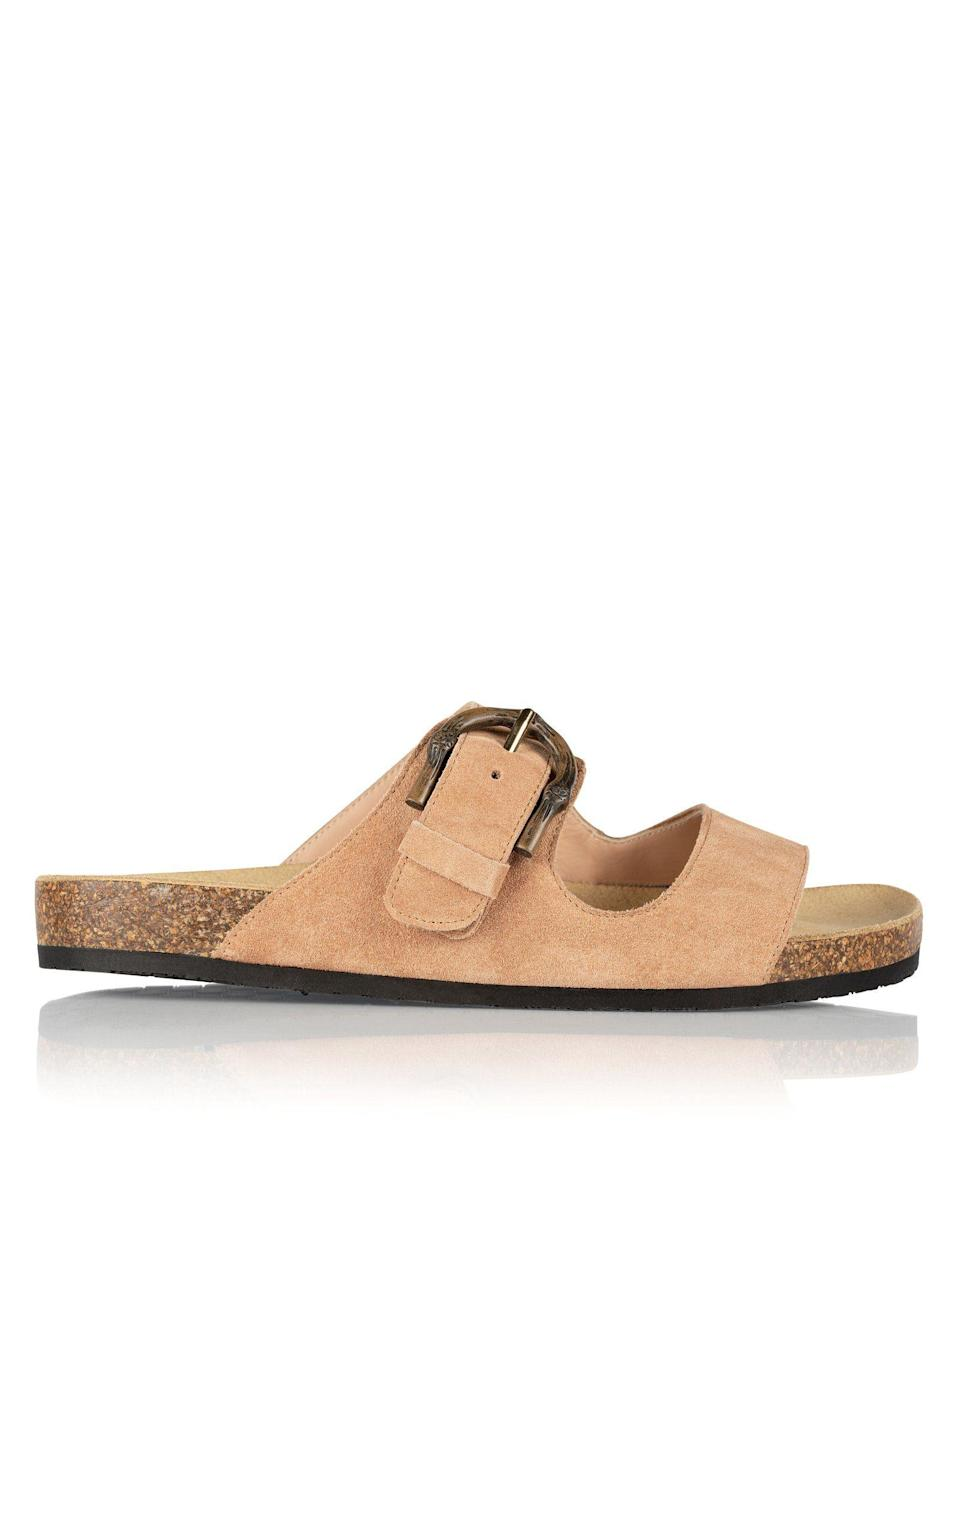 """<p><strong>Brother Vellies</strong></p><p>brothervellies.com</p><p><strong>$465.00</strong></p><p><a href=""""https://brothervellies.com/collections/flats/products/greg-sandal-in-dusty-rose"""" rel=""""nofollow noopener"""" target=""""_blank"""" data-ylk=""""slk:Shop Now"""" class=""""link rapid-noclick-resp"""">Shop Now</a></p><p>When it comes to post-COVID fashion, most are looking for pieces that are sleek and comfortable—characteristics that this Birkenstock-style sandal by Brother Vellies fully captures. </p>"""